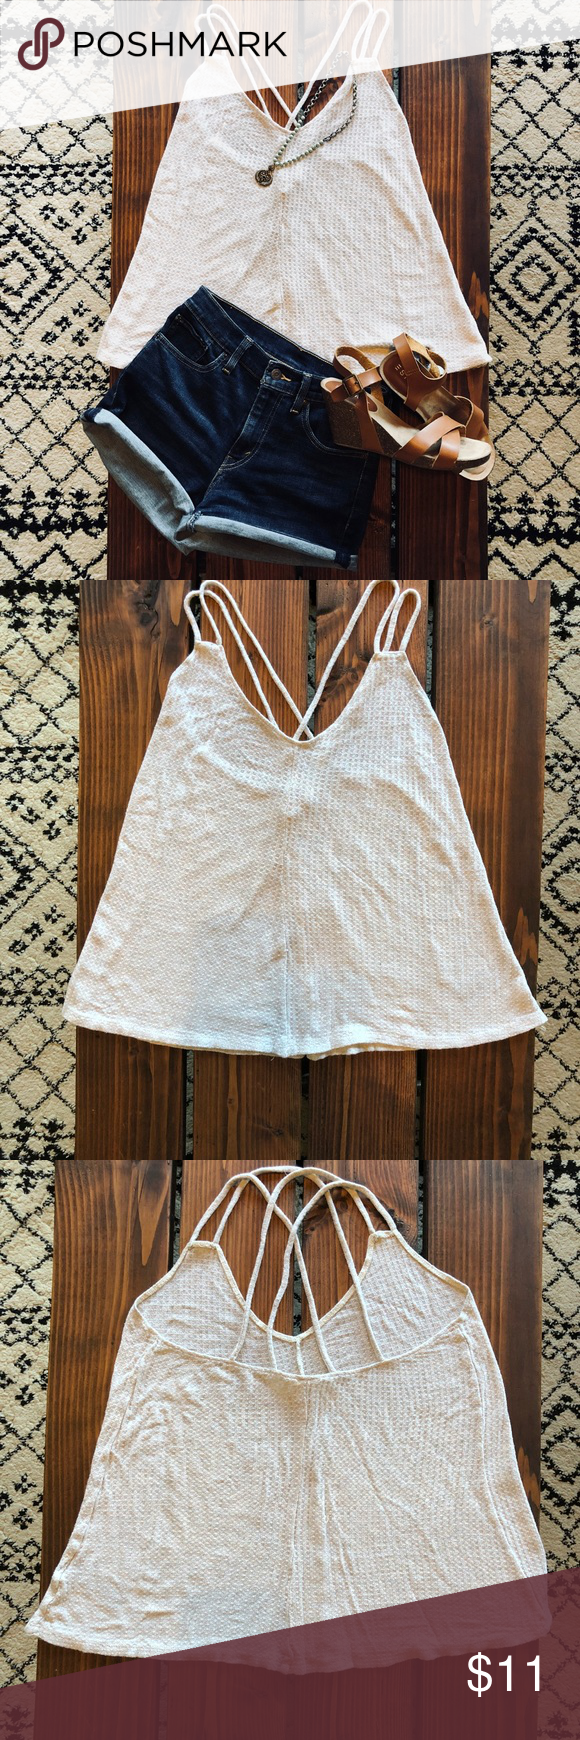 UO Tank Top   Tank tops, Urban outfitters tops, Clothes design